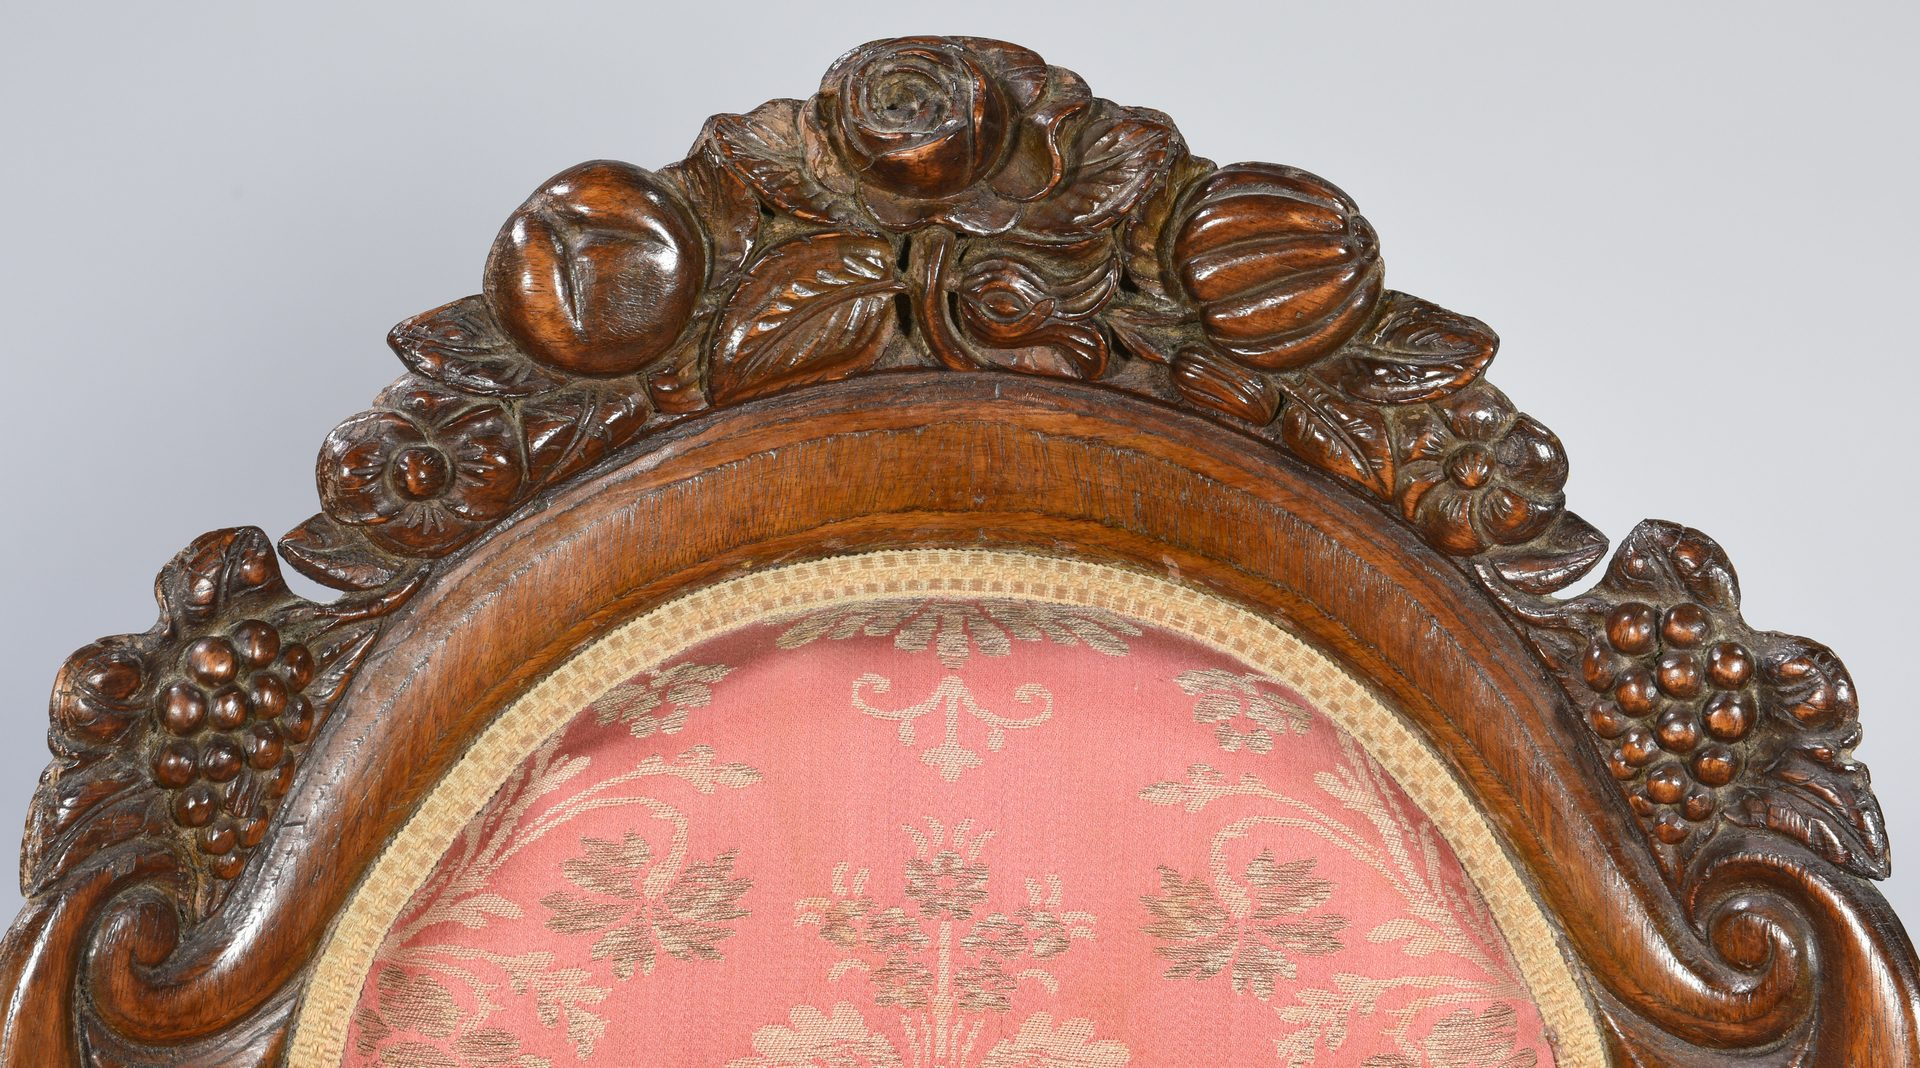 Lot 584: Pair Rococo Revival Chairs, attr. Belter